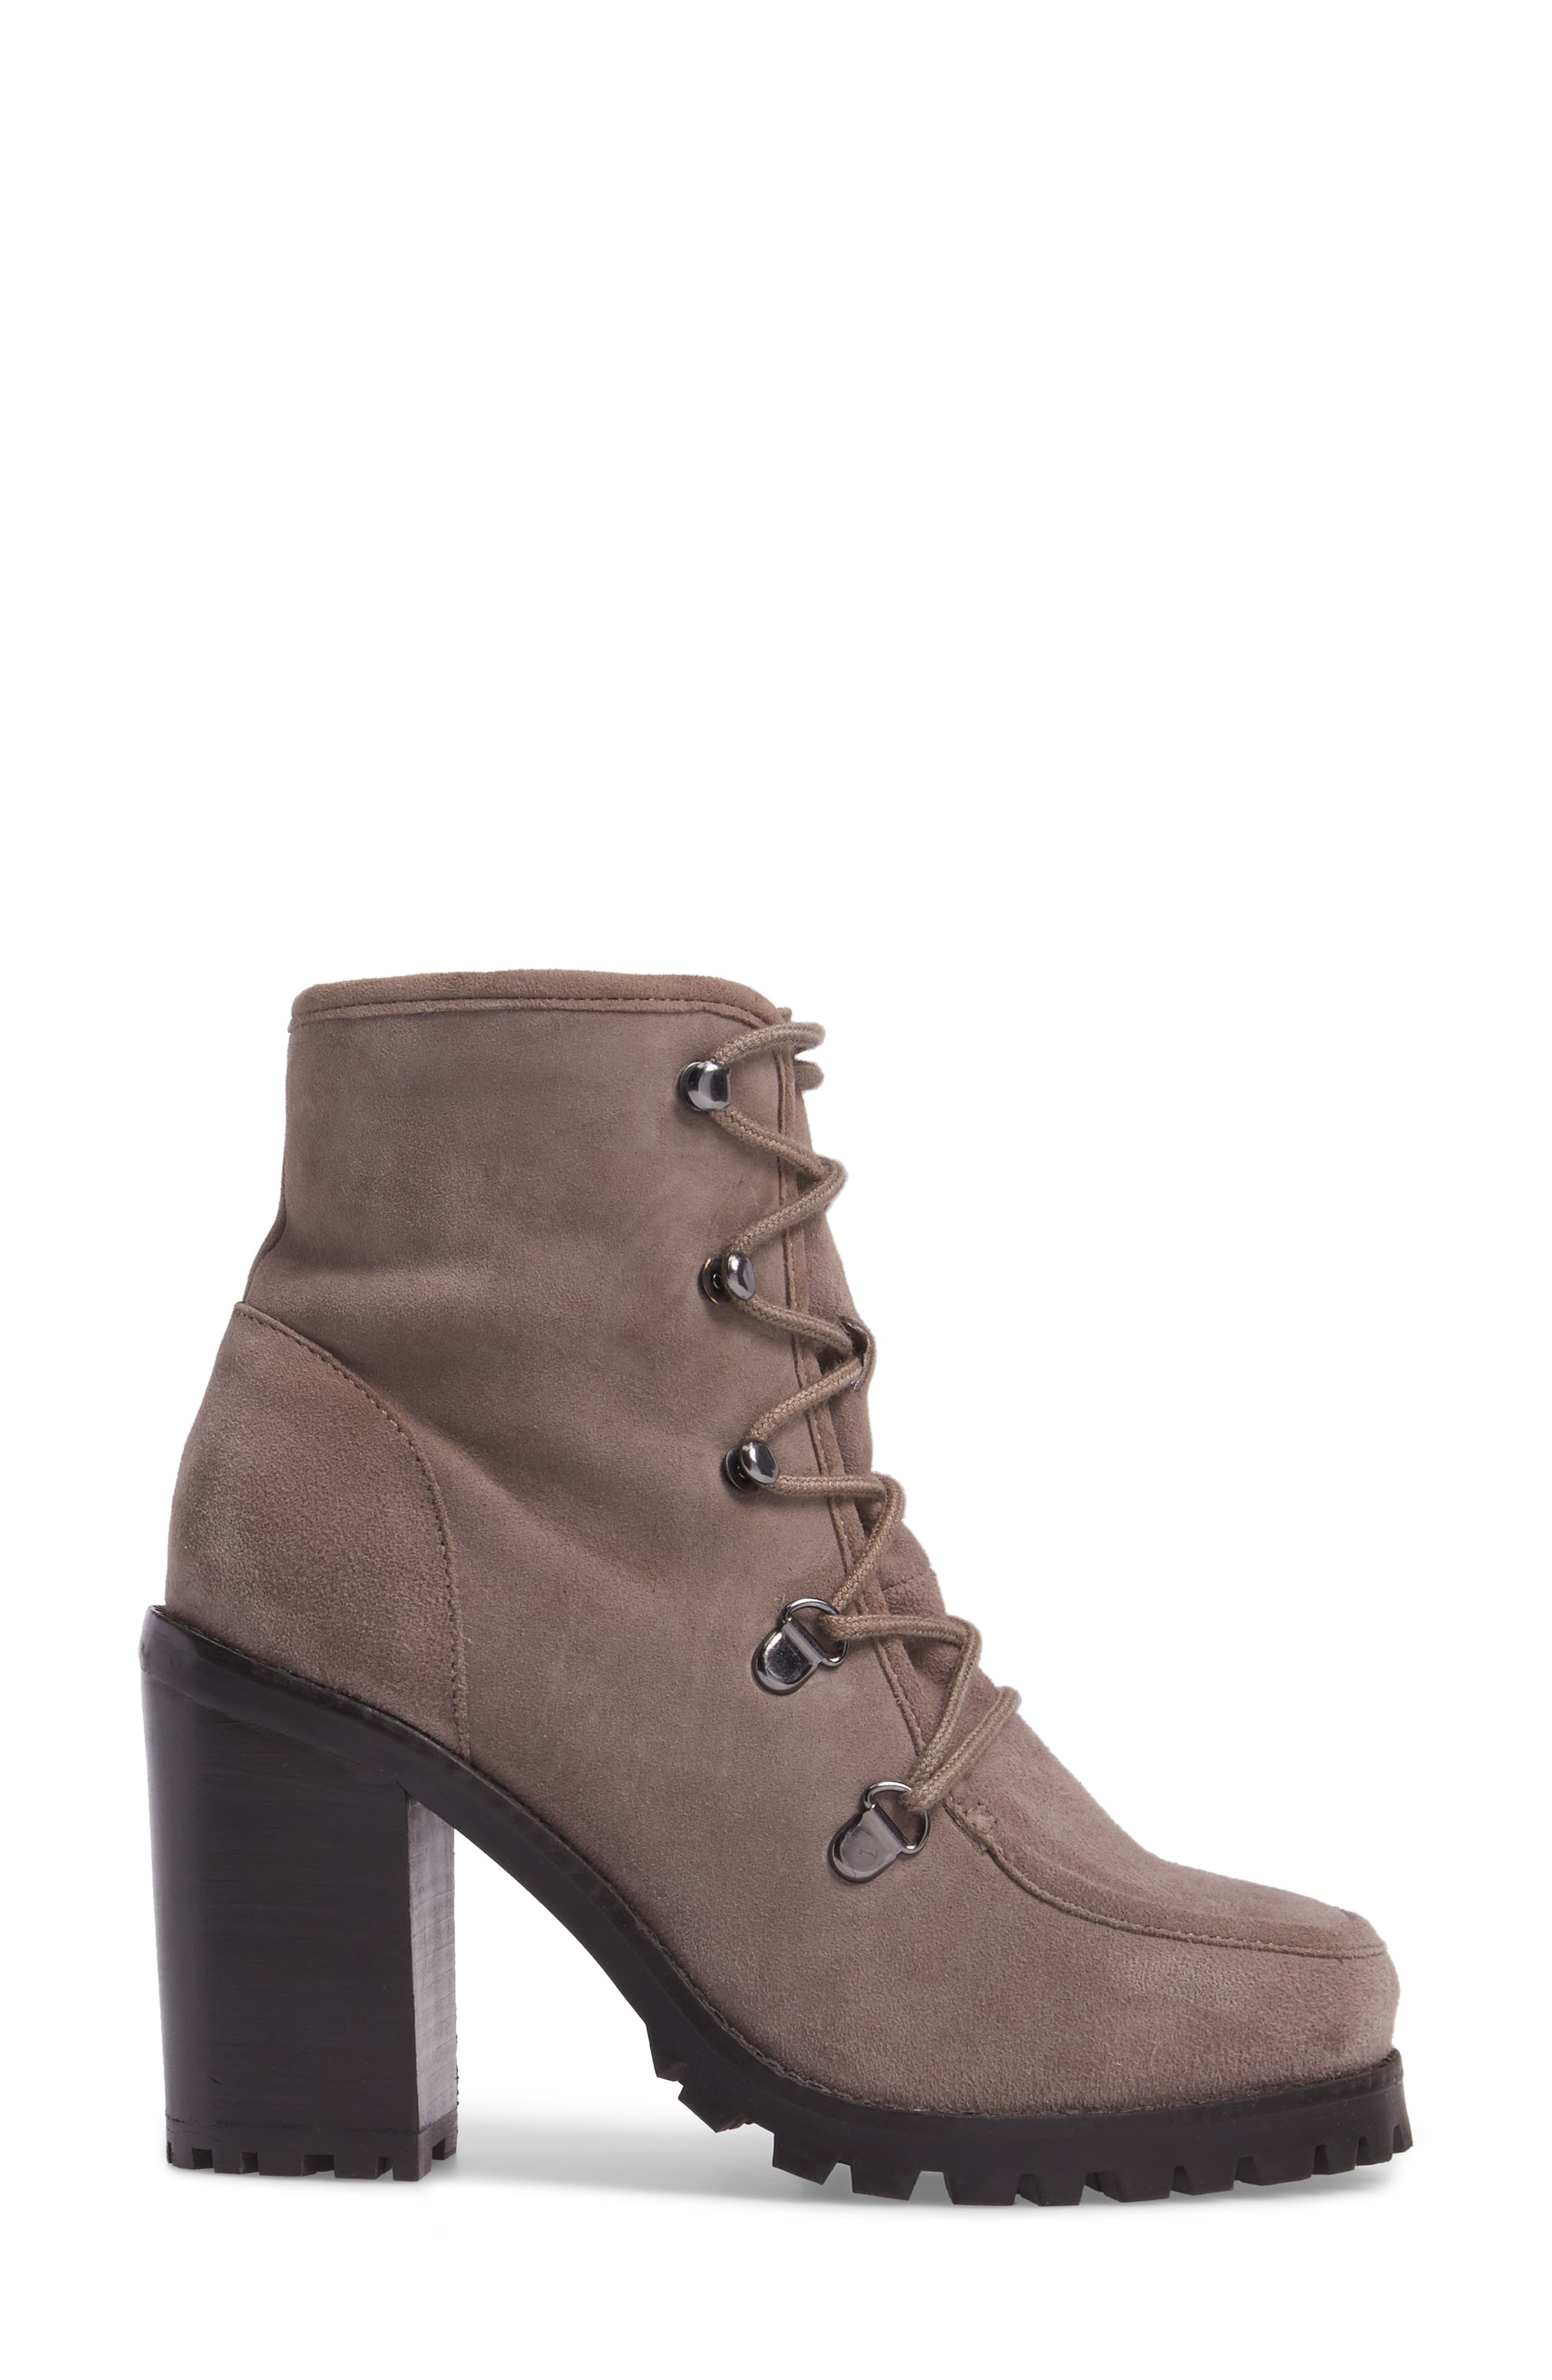 Theater Lace-Up Bootie,                             Alternate thumbnail 3, color,                             Taupe Suede